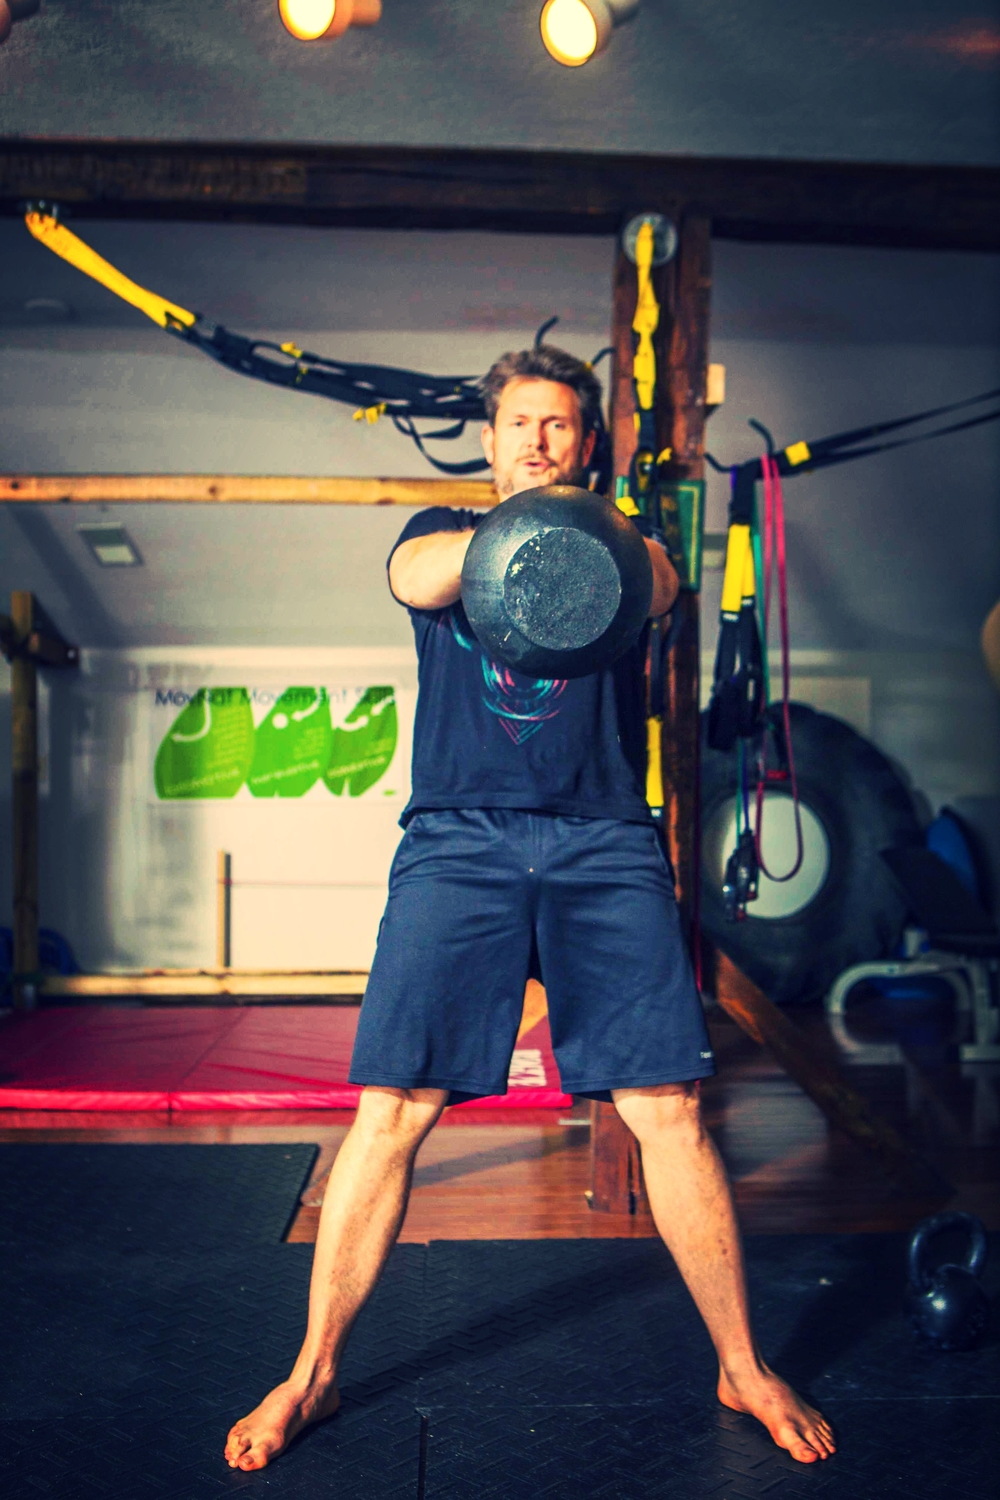 jim full body kb swing beast.jpg